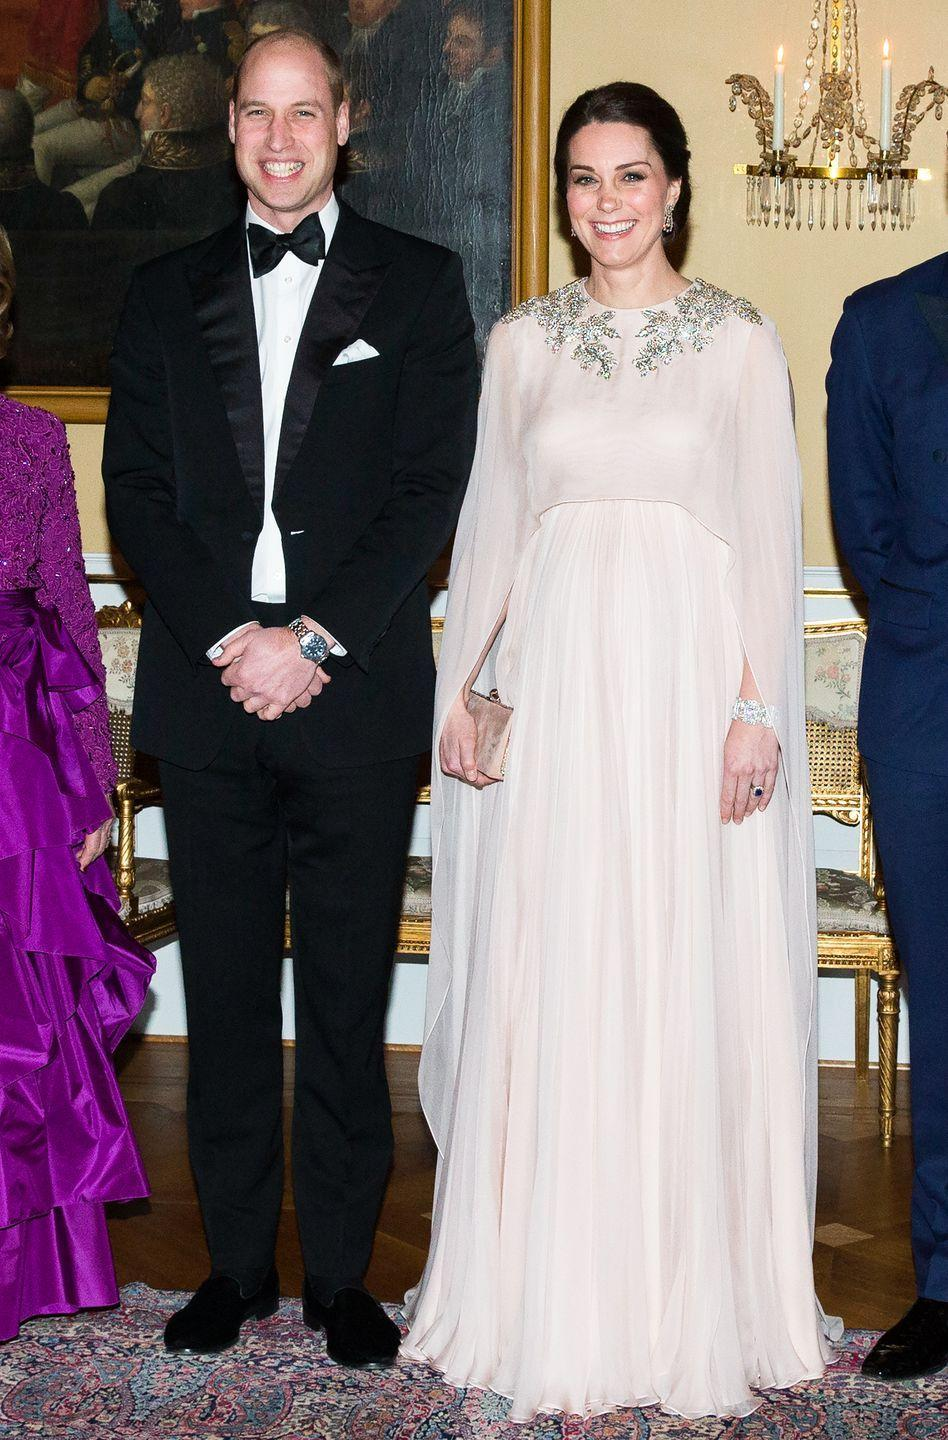 <p>McQueen has also been one of Kate's most-worn maternity brands when it comes to formalwear. She chose this stunning, sweeping gown for dinner at the Royal Palace in Oslo, Norway. </p>